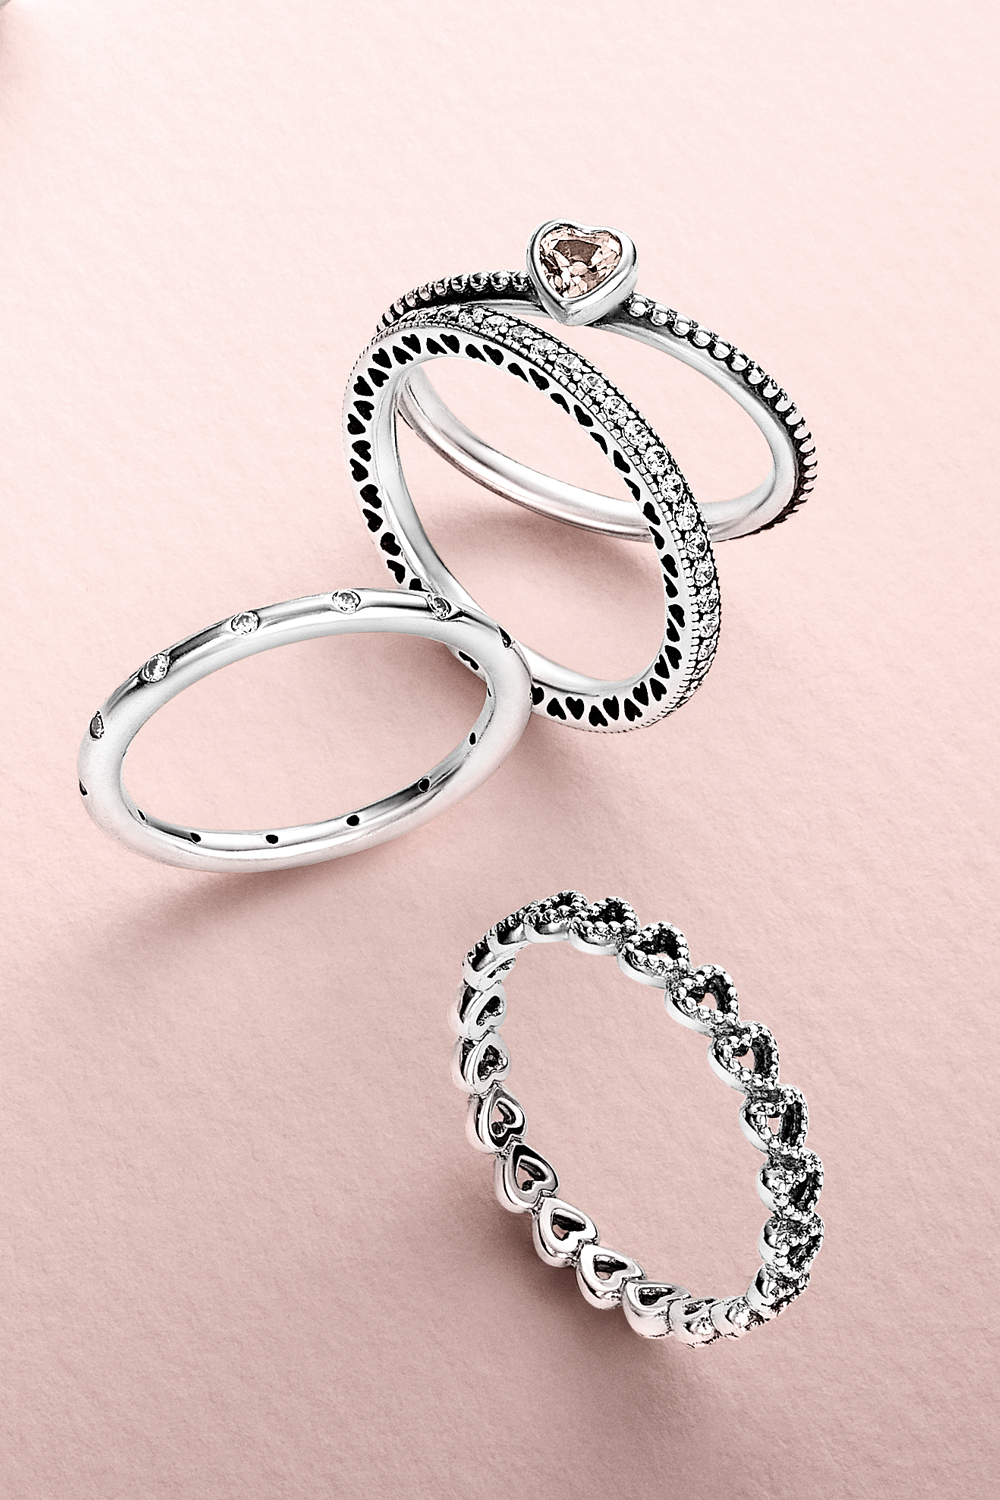 Create A Romantic Lookstacking Cute Heart Shaped Rings. #pandora With Regard To 2017 Heart Shaped Pandora Logo Rings (Gallery 14 of 25)